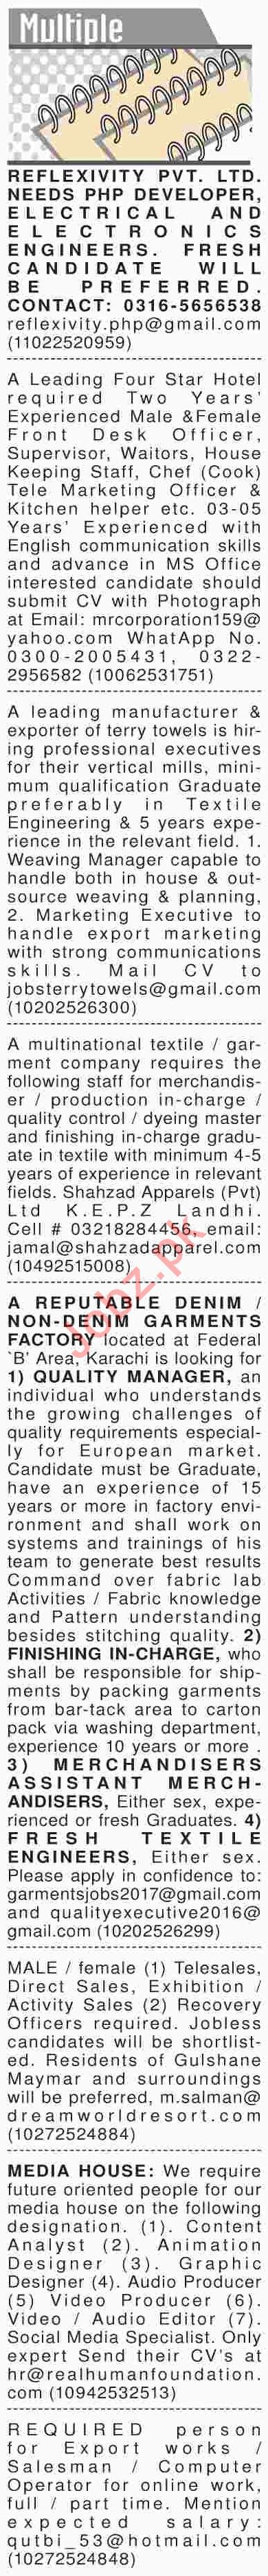 Dawn Sunday Classified Ads 17th March 2019 Multiple Staff